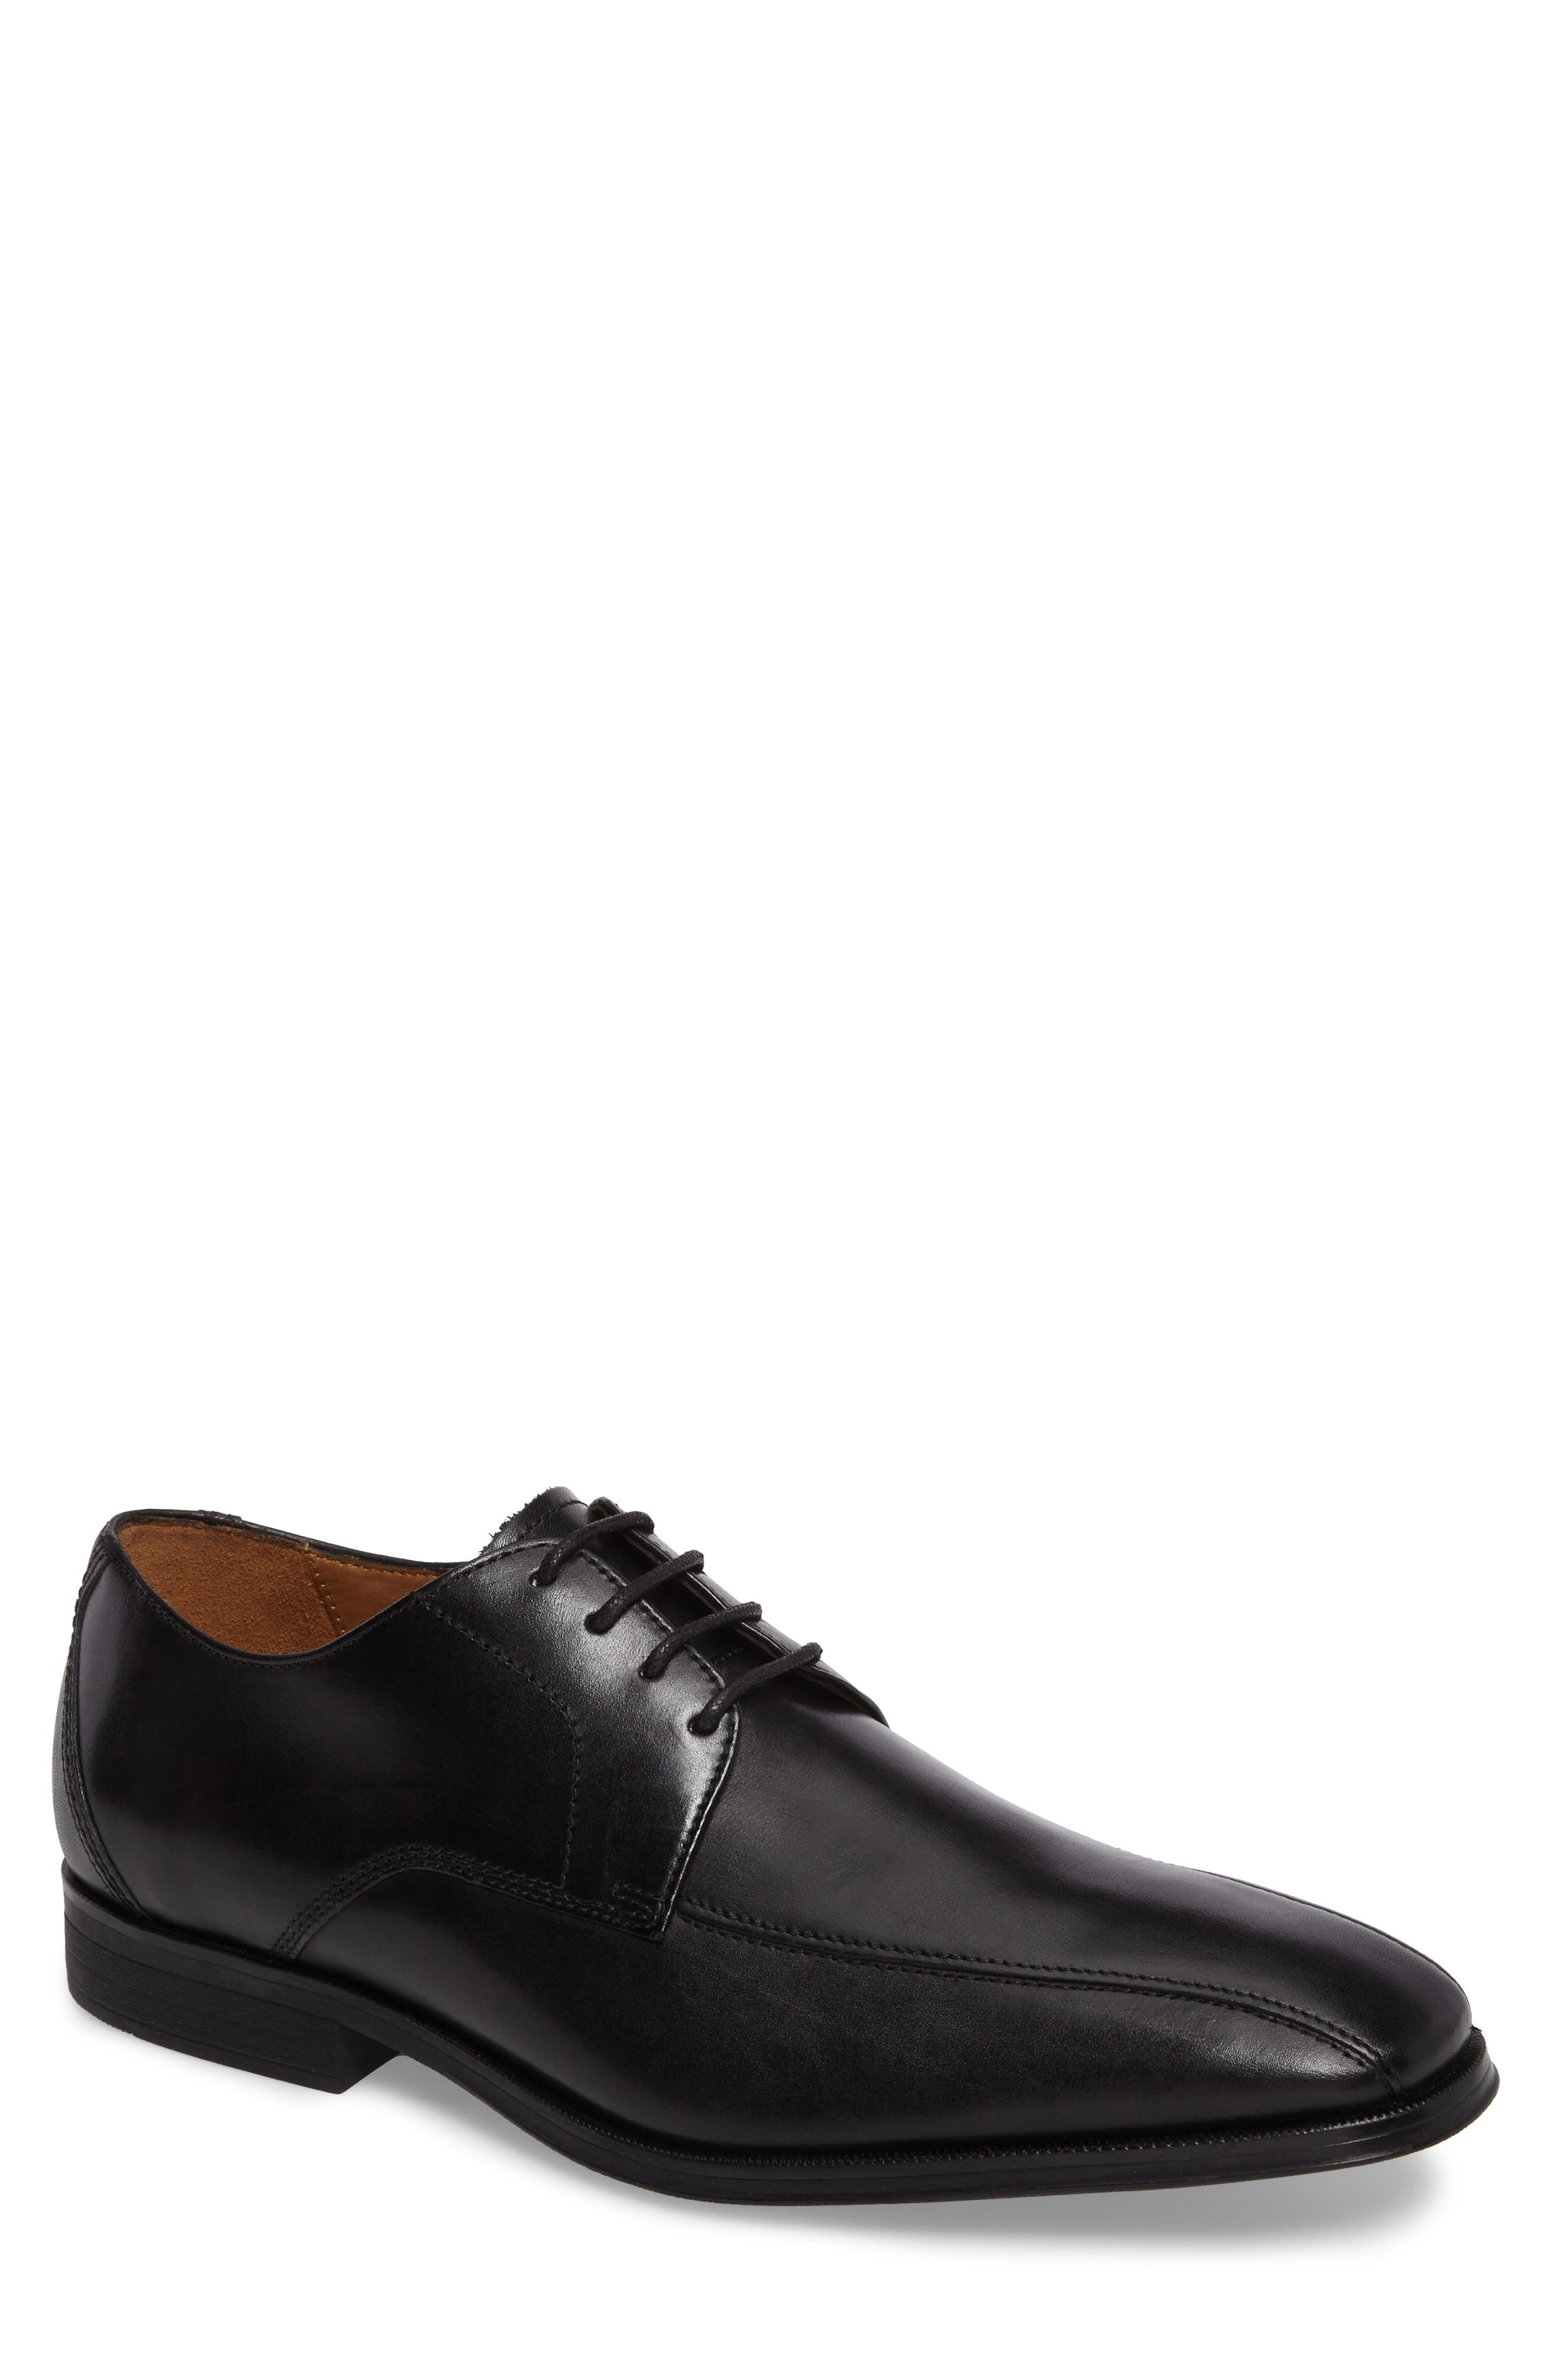 Clarks Gilman Bicycle Toe Derby,                         Main,                         color, Black Leather